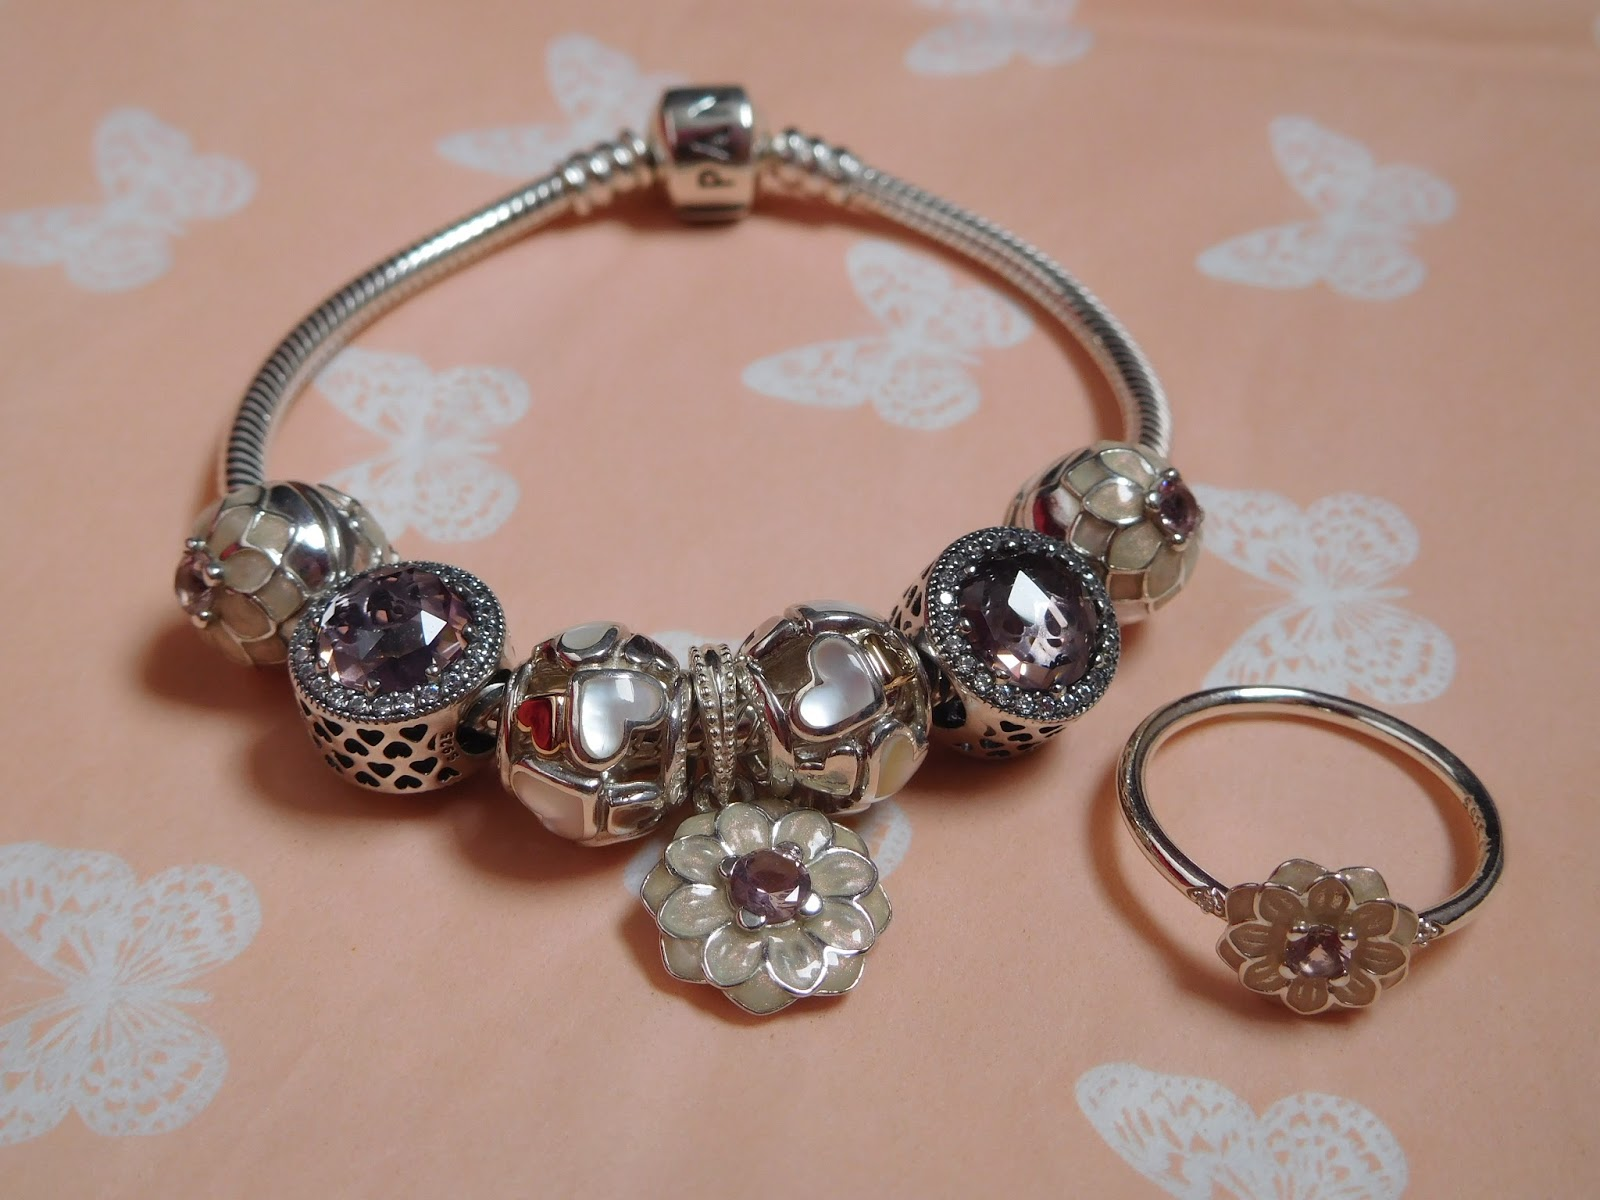 gift pandora a tag charm set in archives alice parks of charms new review bangle park bangles disney teacup fantasyland